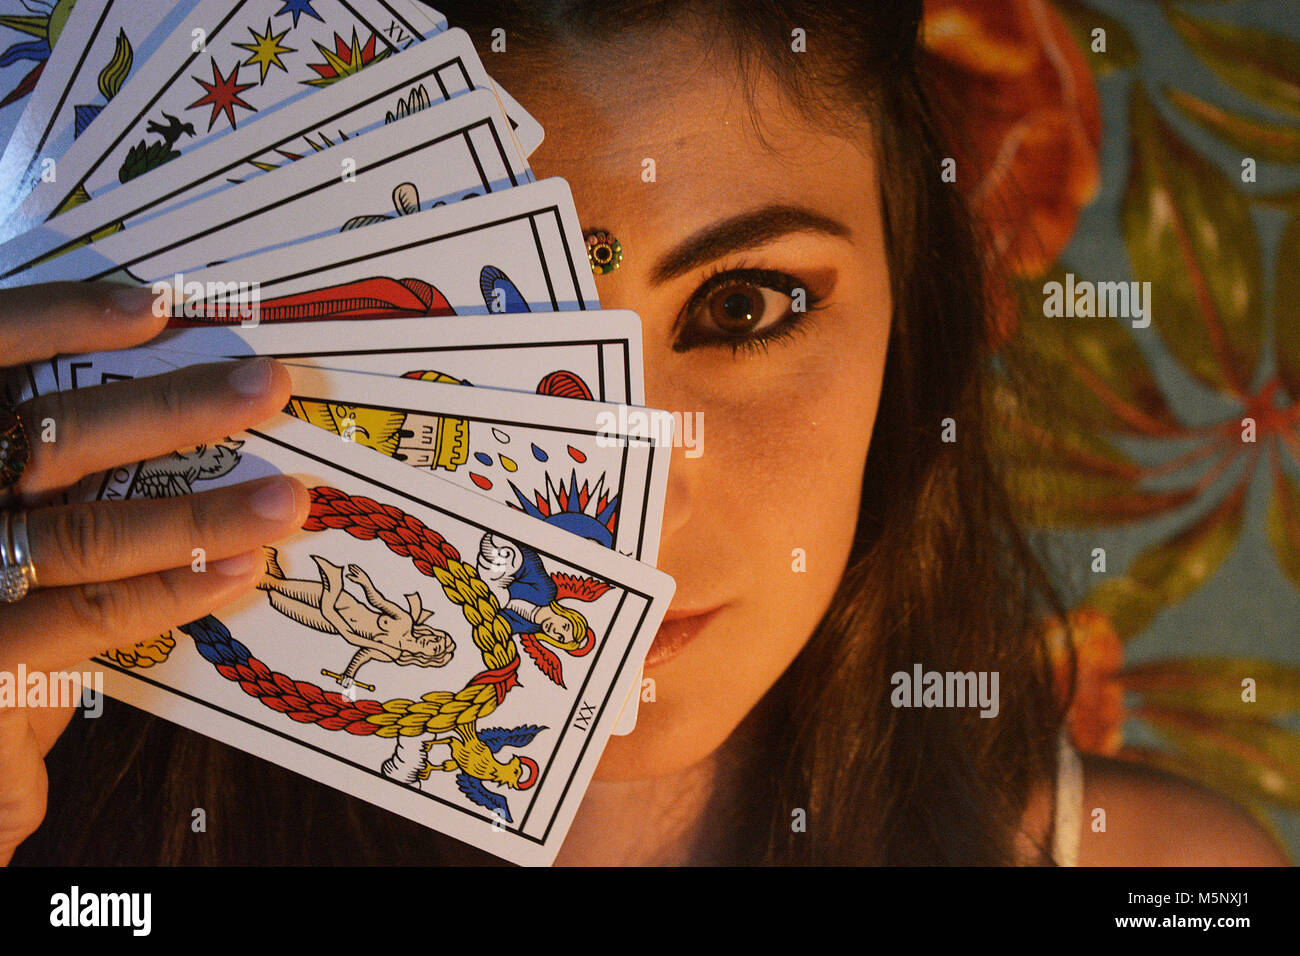 Woman with tarot deck on face - Stock Image